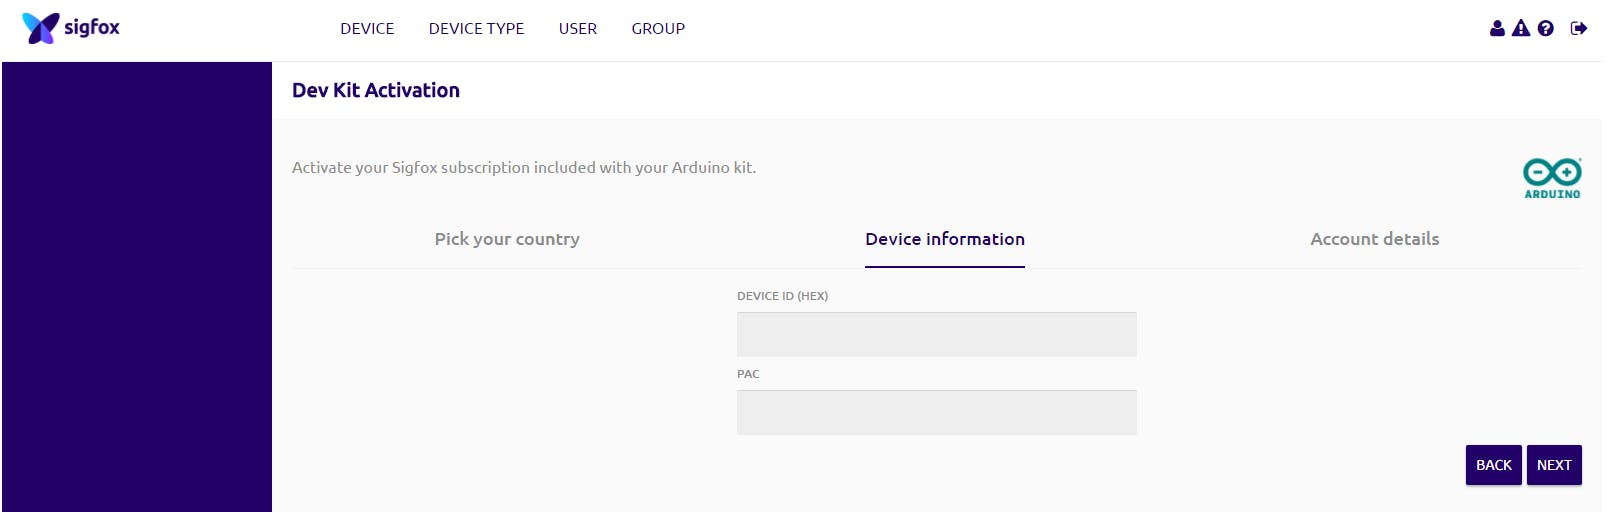 Device (Arduino) activation page after logging in